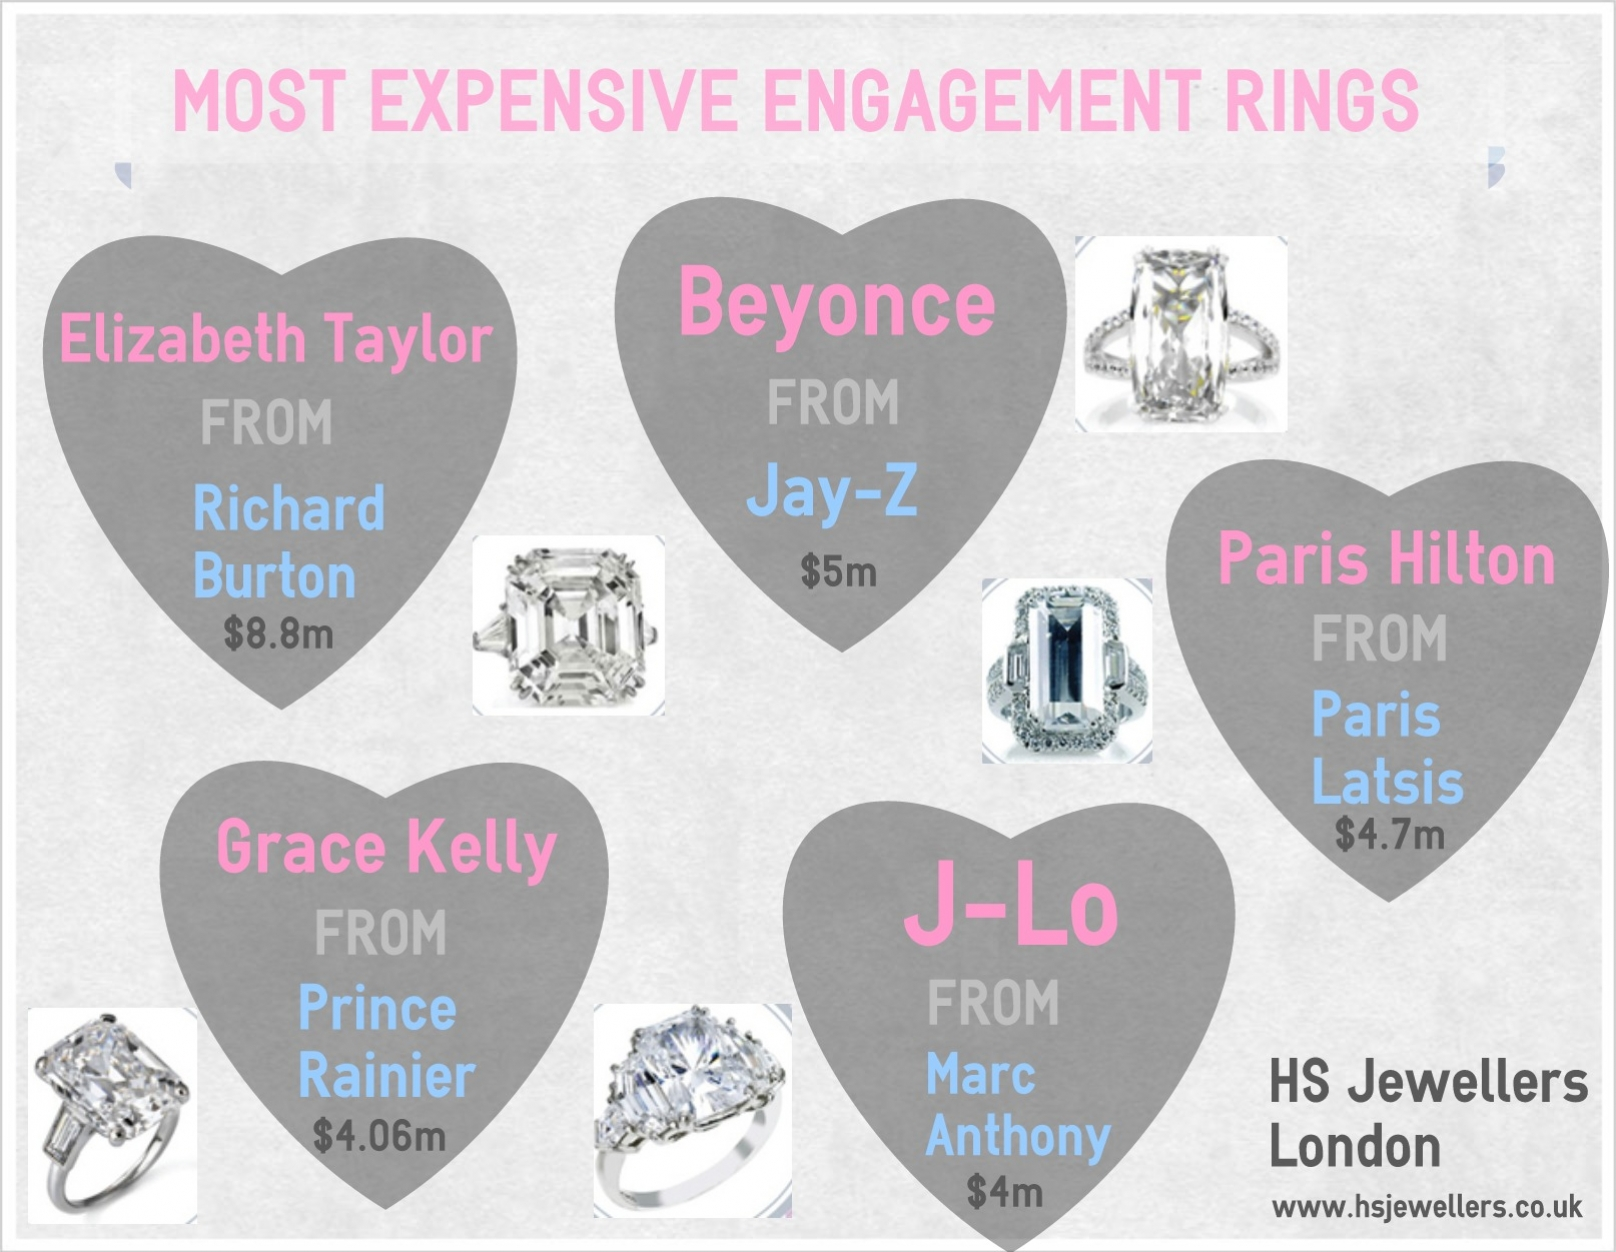 jewellery celebrity engagement time rings of the what all wear who most wedding expensive